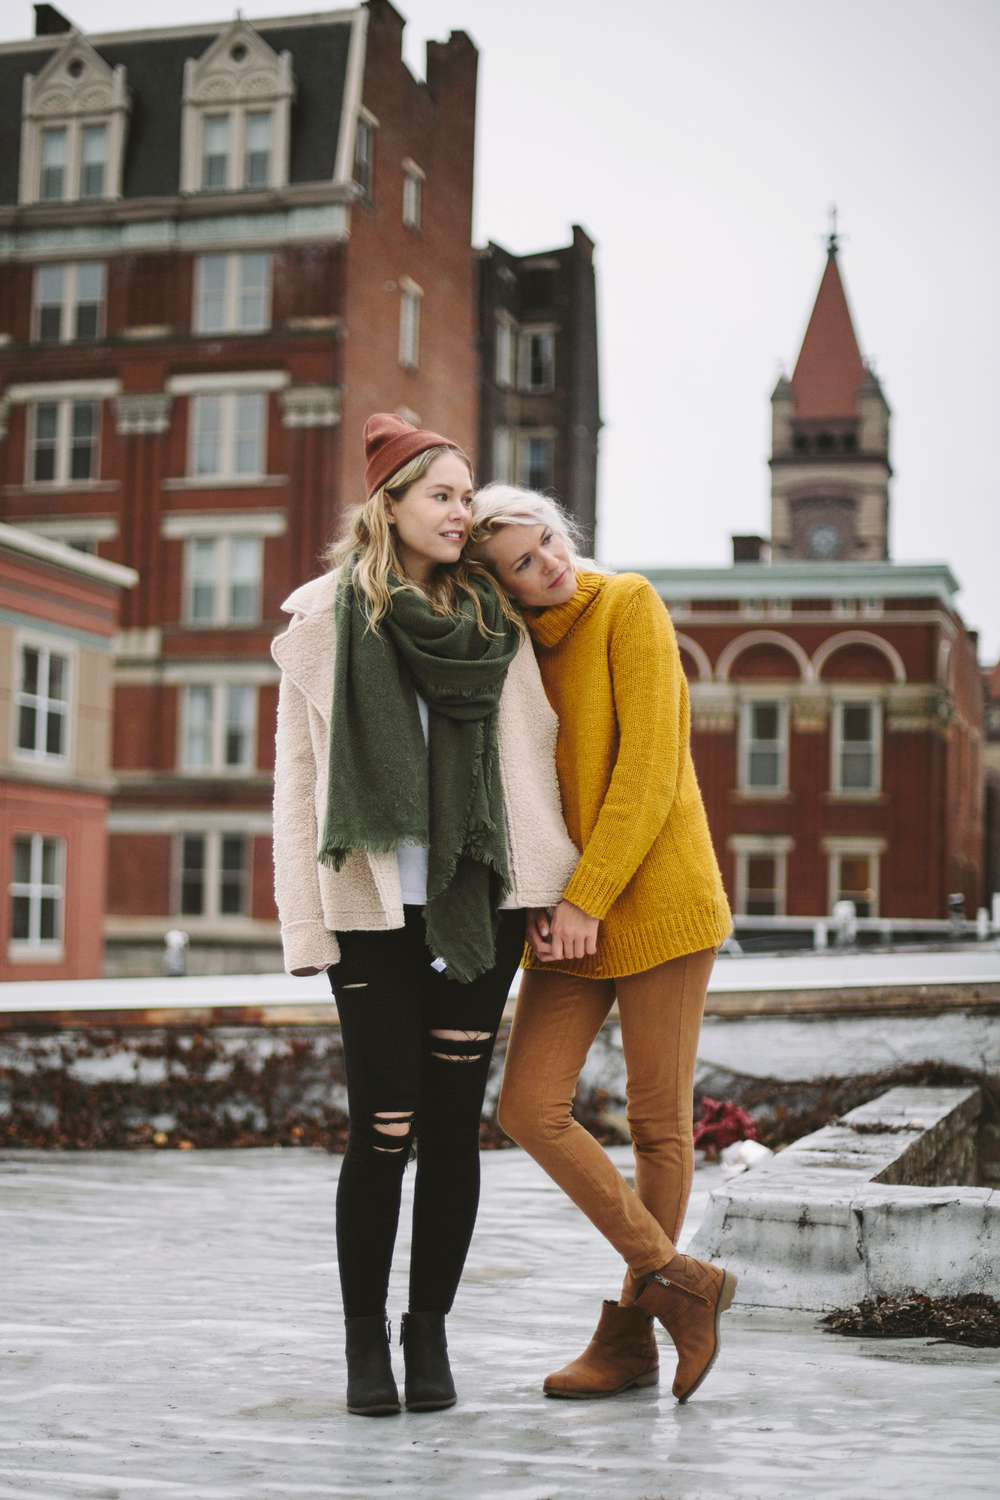 Kate Rentz and her childhood friend enjoying catching up in Ohio wearing Teva boots.